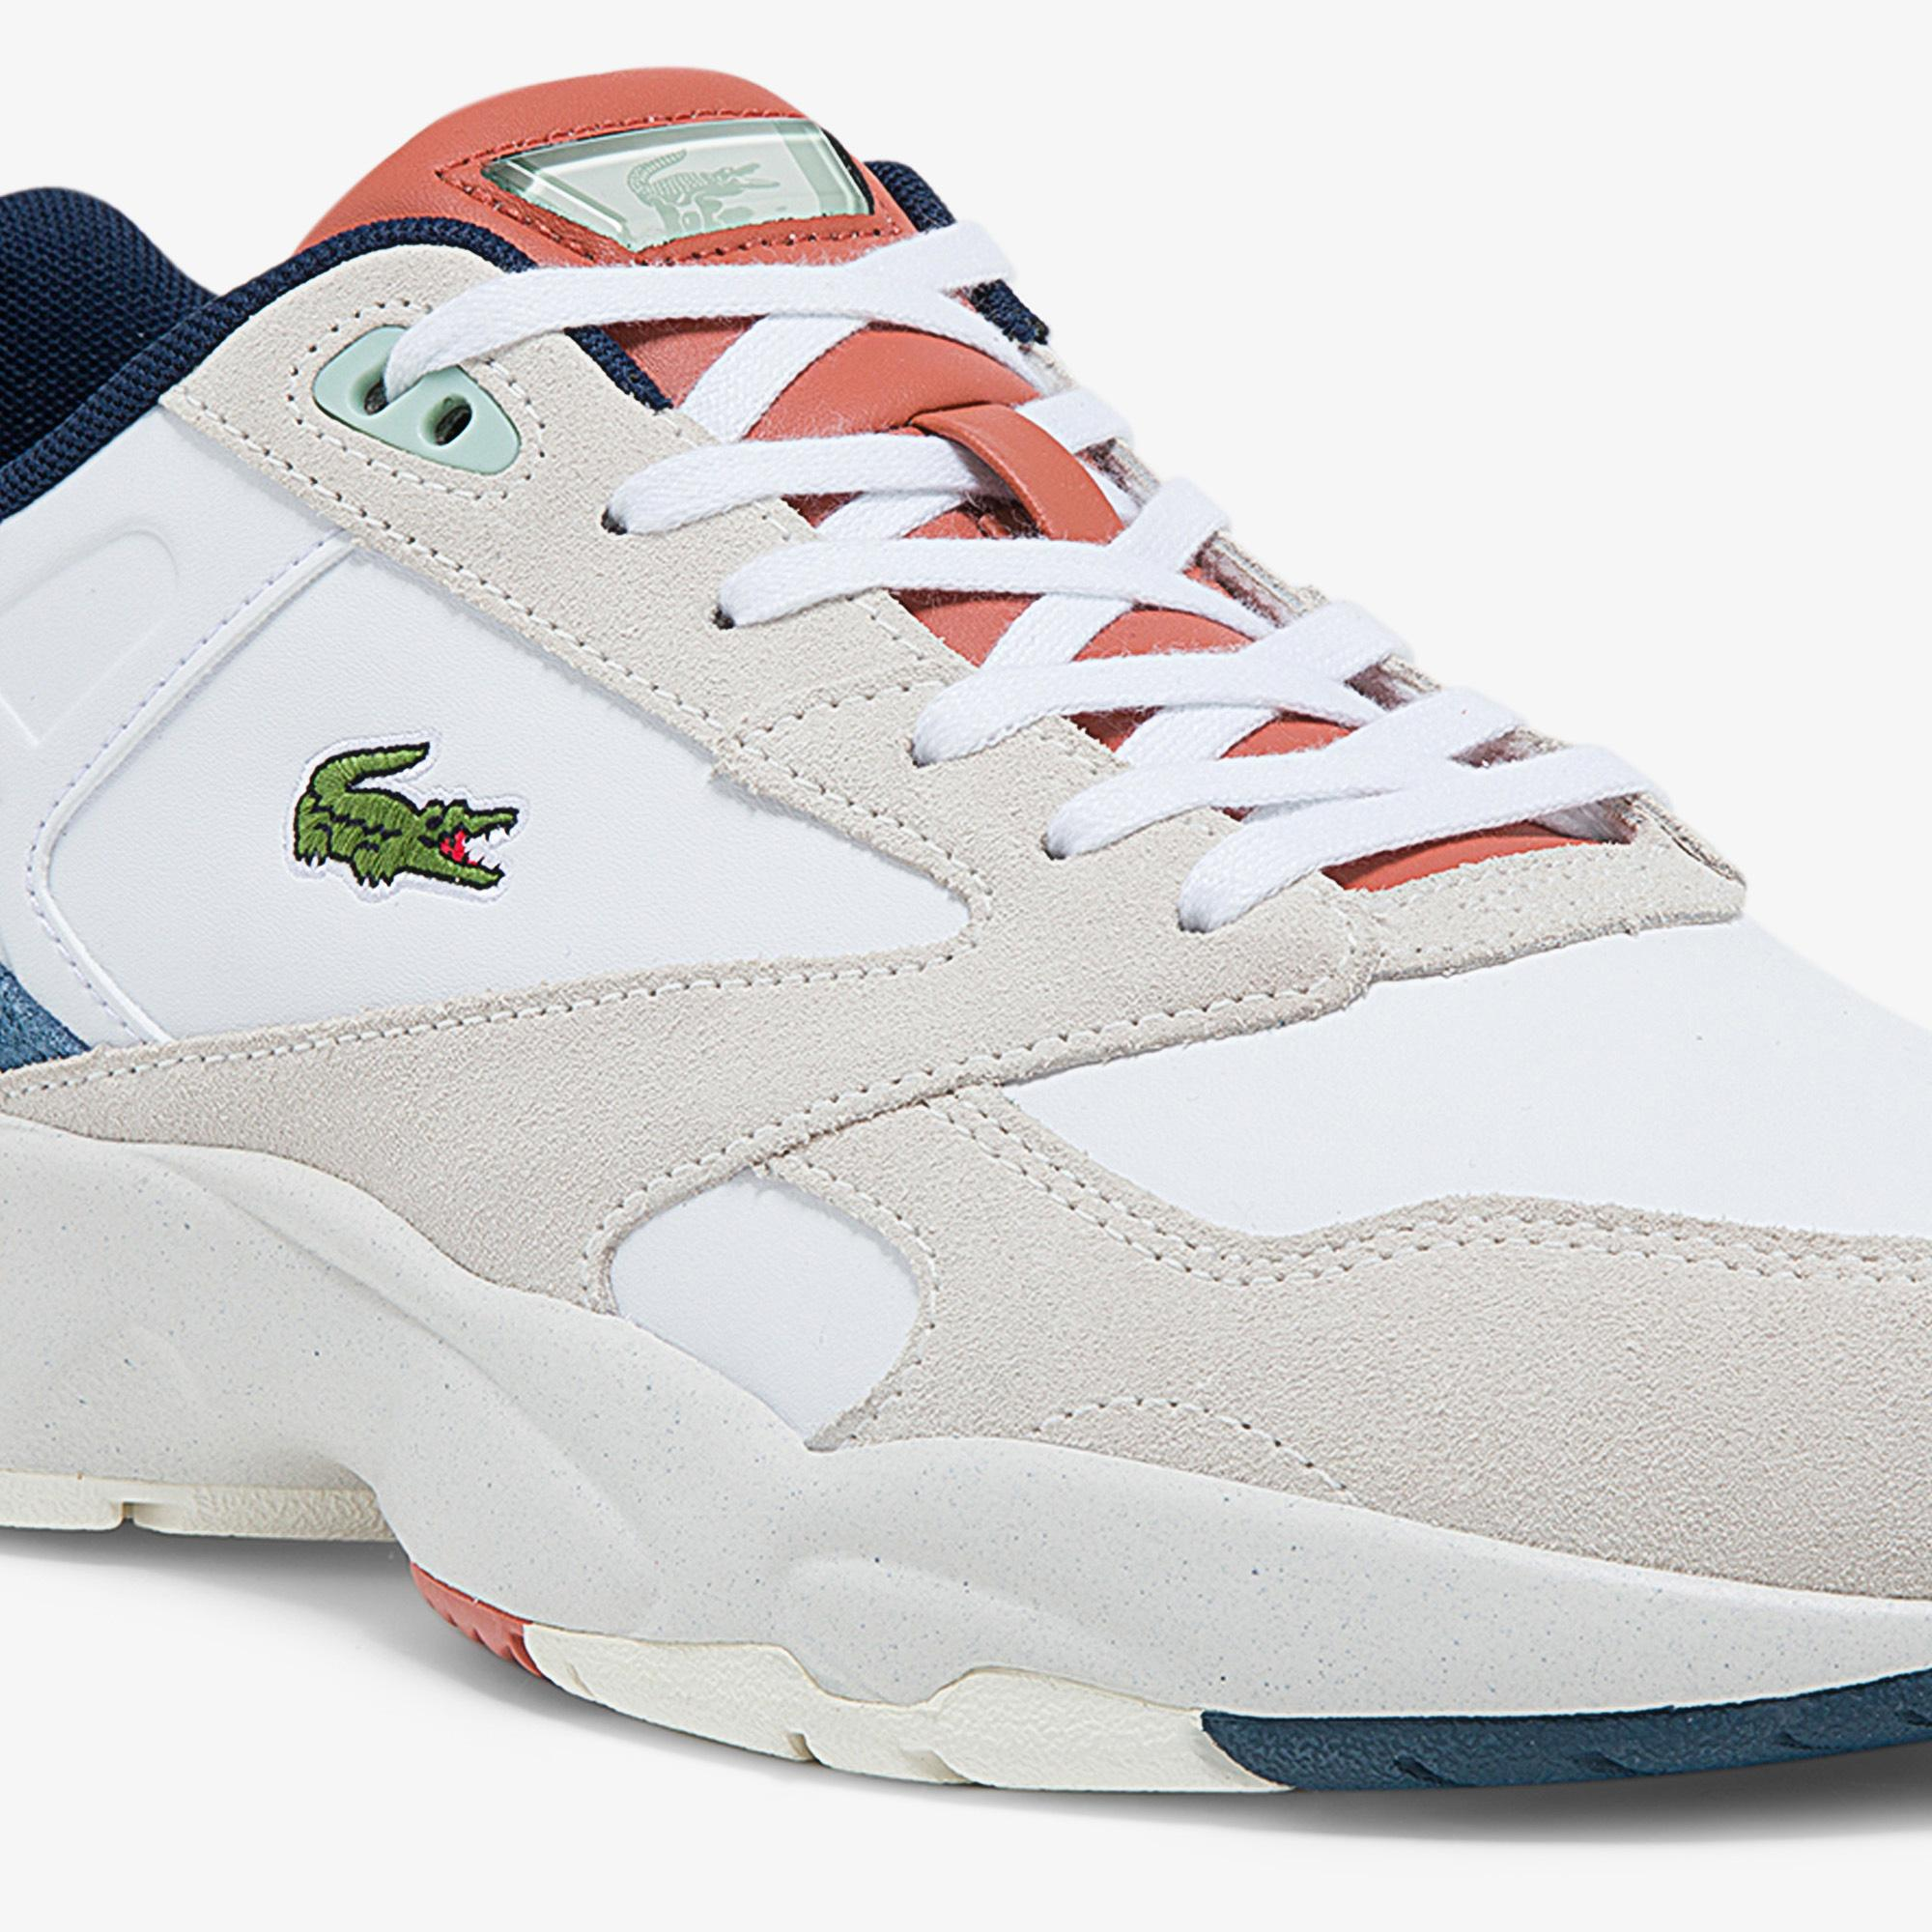 Lacoste Men's Storm 96 Synthetic, Suede and Leather Sneakers